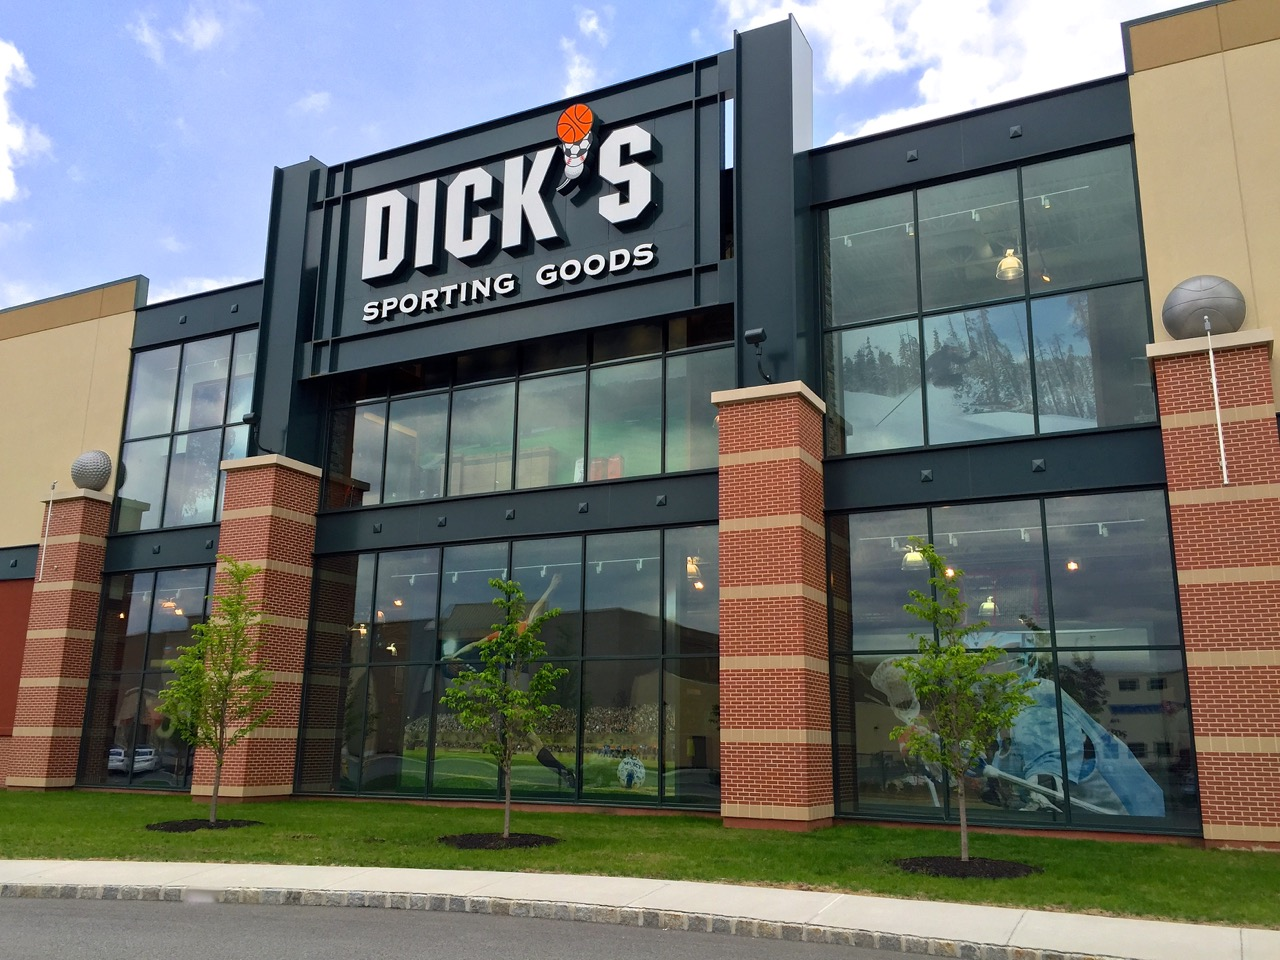 Touching dicks sports and outdoors opinion you